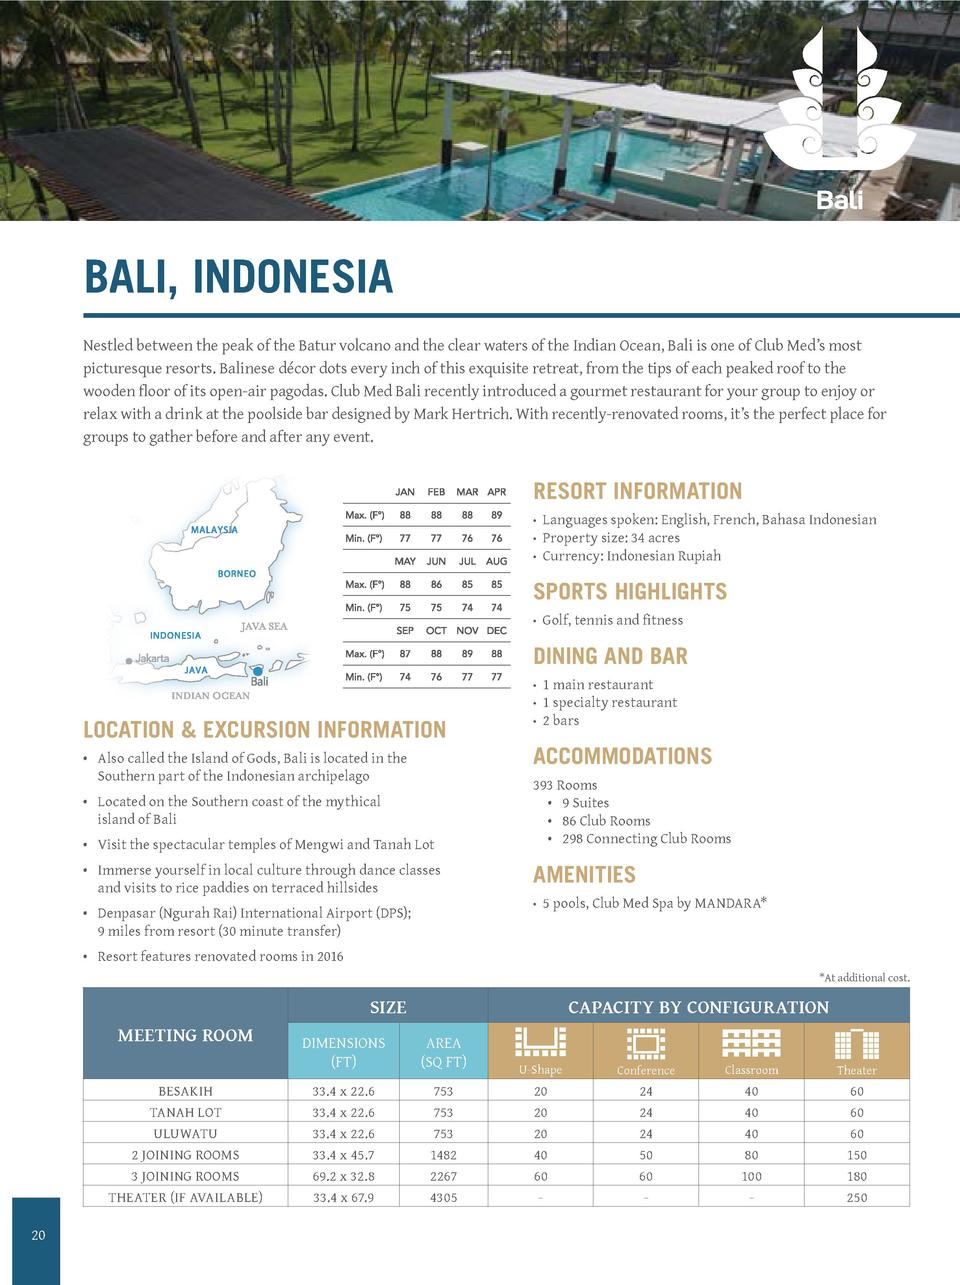 BALI, INDONESIA  CLUB ME  PICTO BA  N   dossier  Date   1 0  AD CD va  Client valid  Nestled between the peak of the Batur...